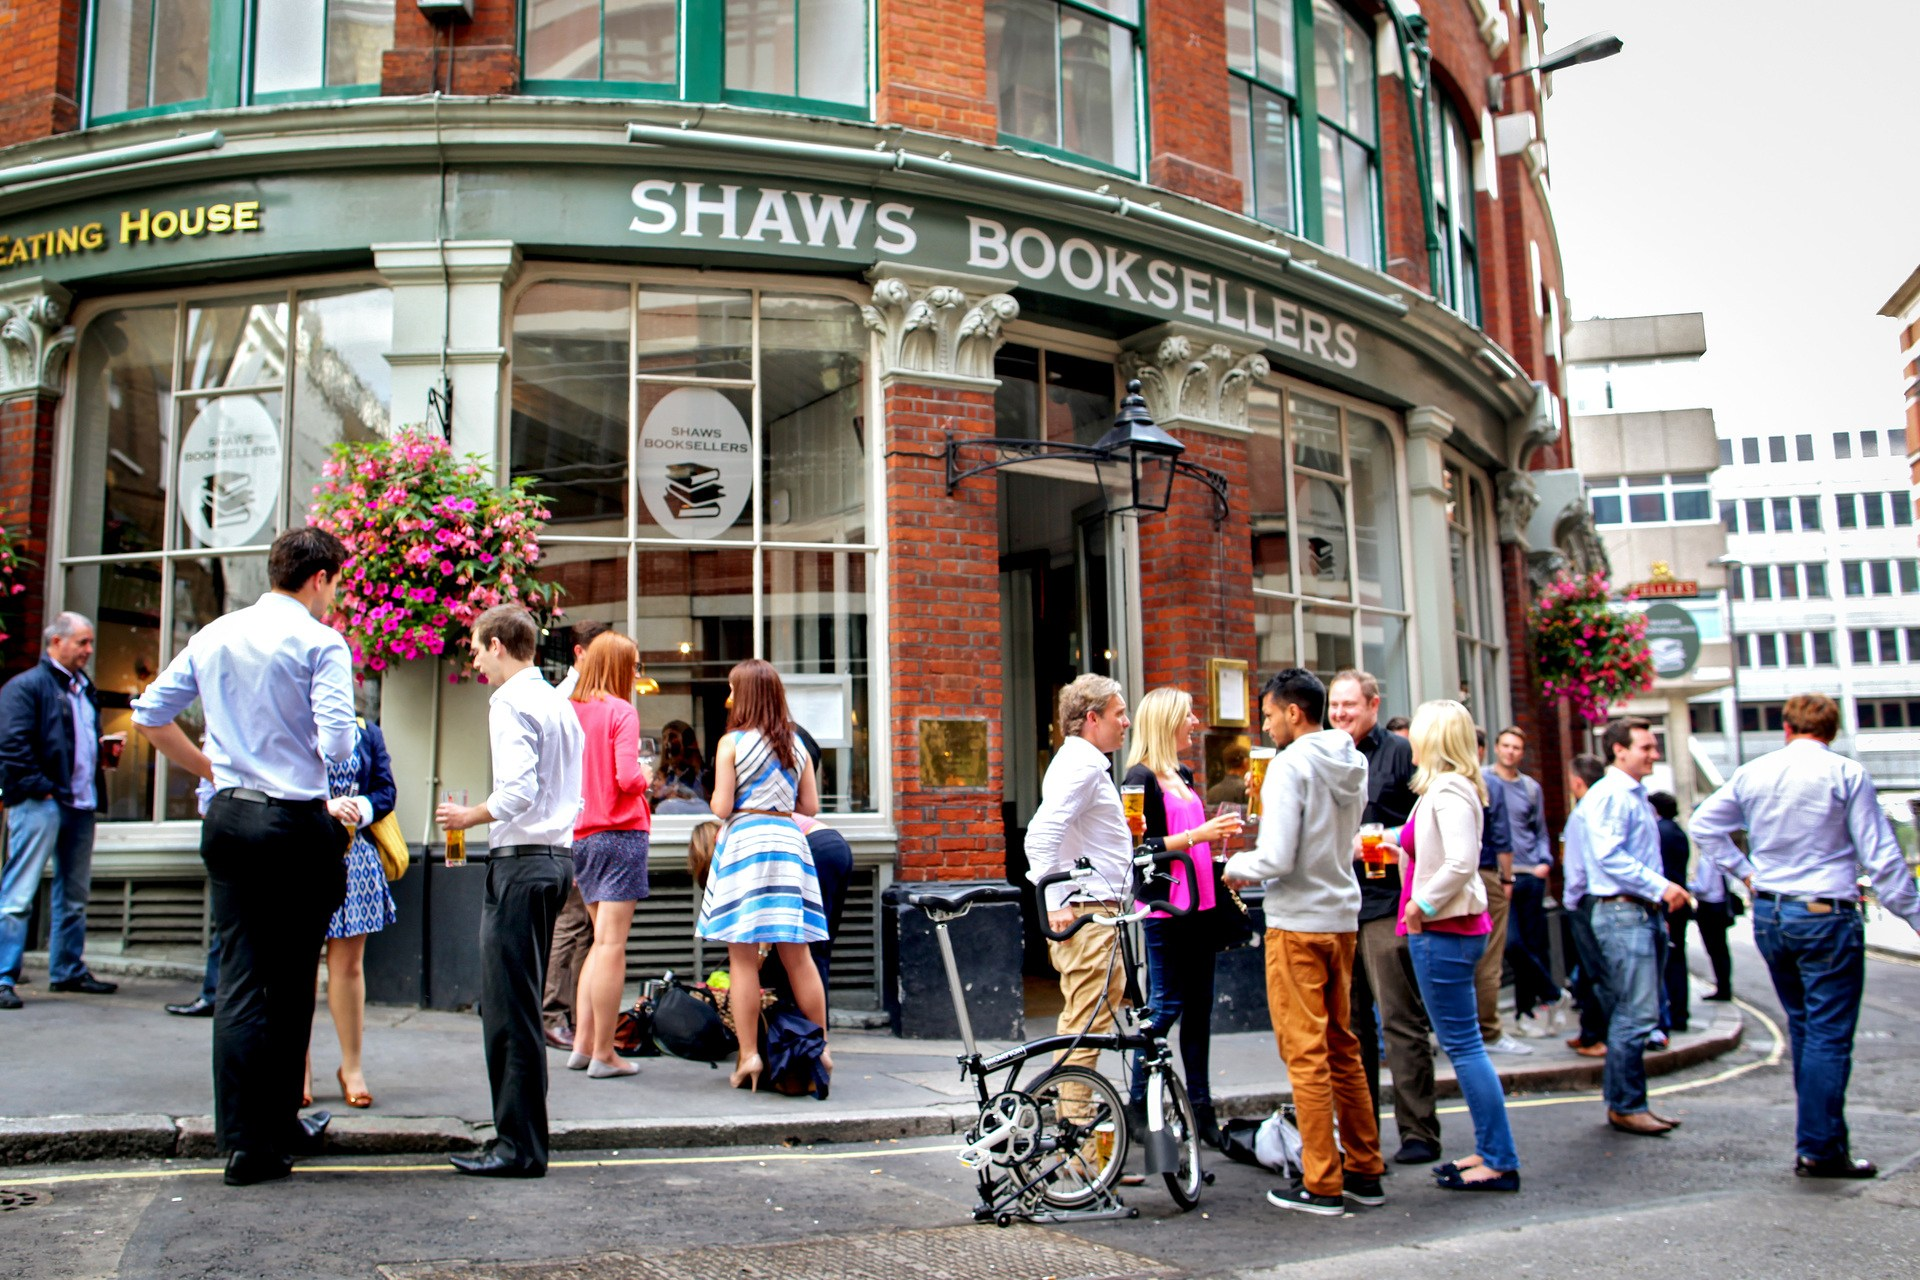 Shaws Booksellers